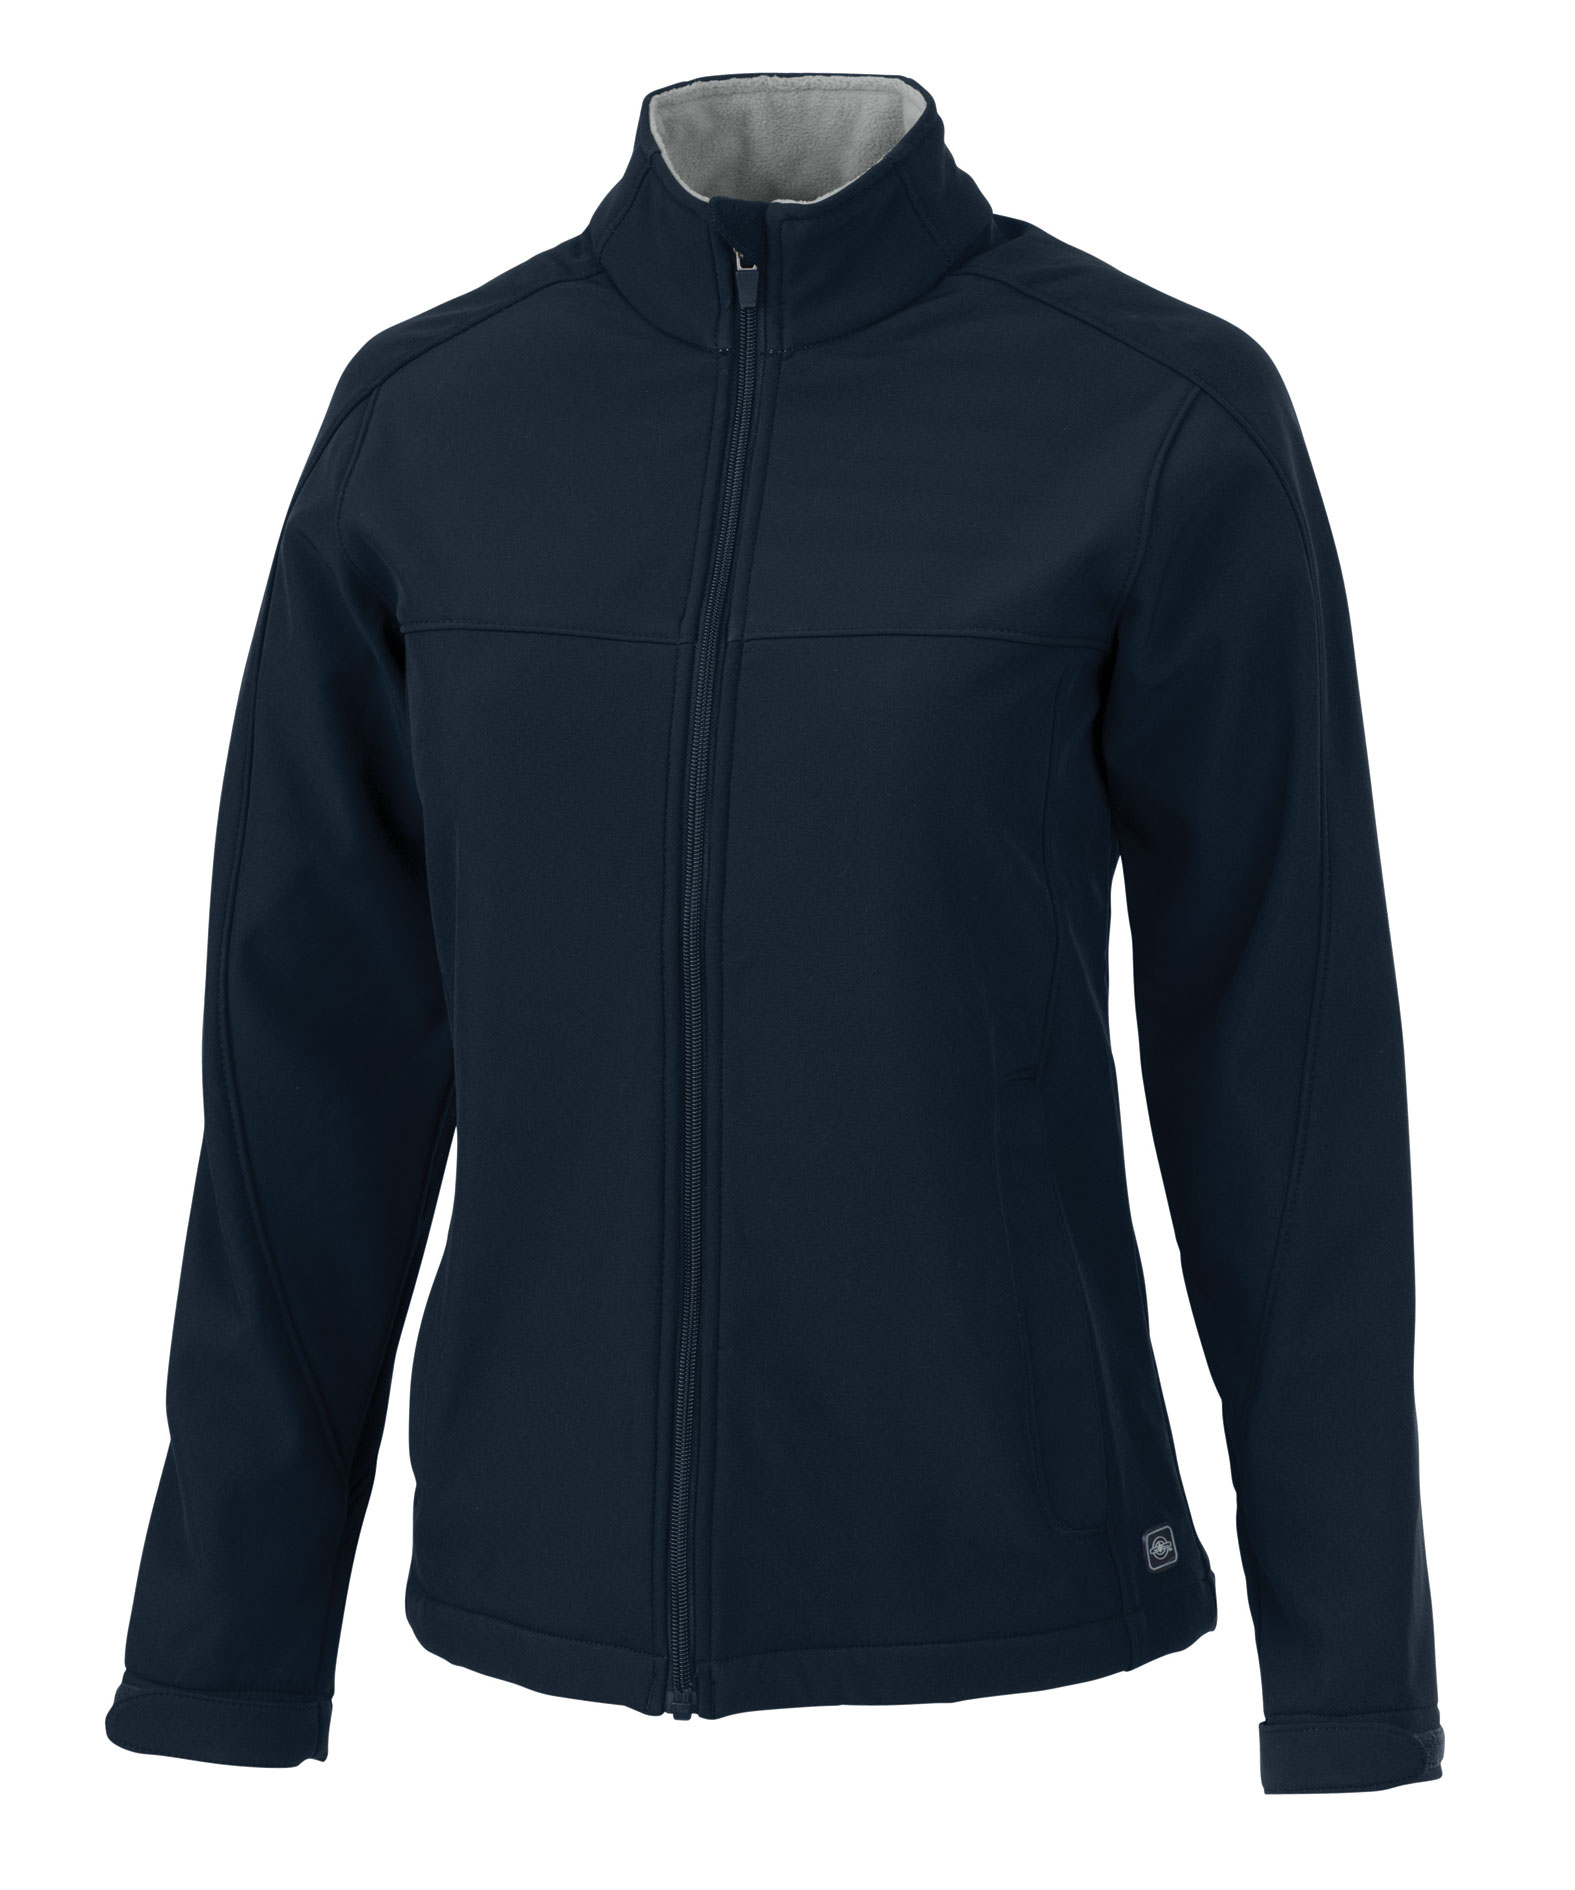 Charles River Womens Classic Soft Shell Jacket